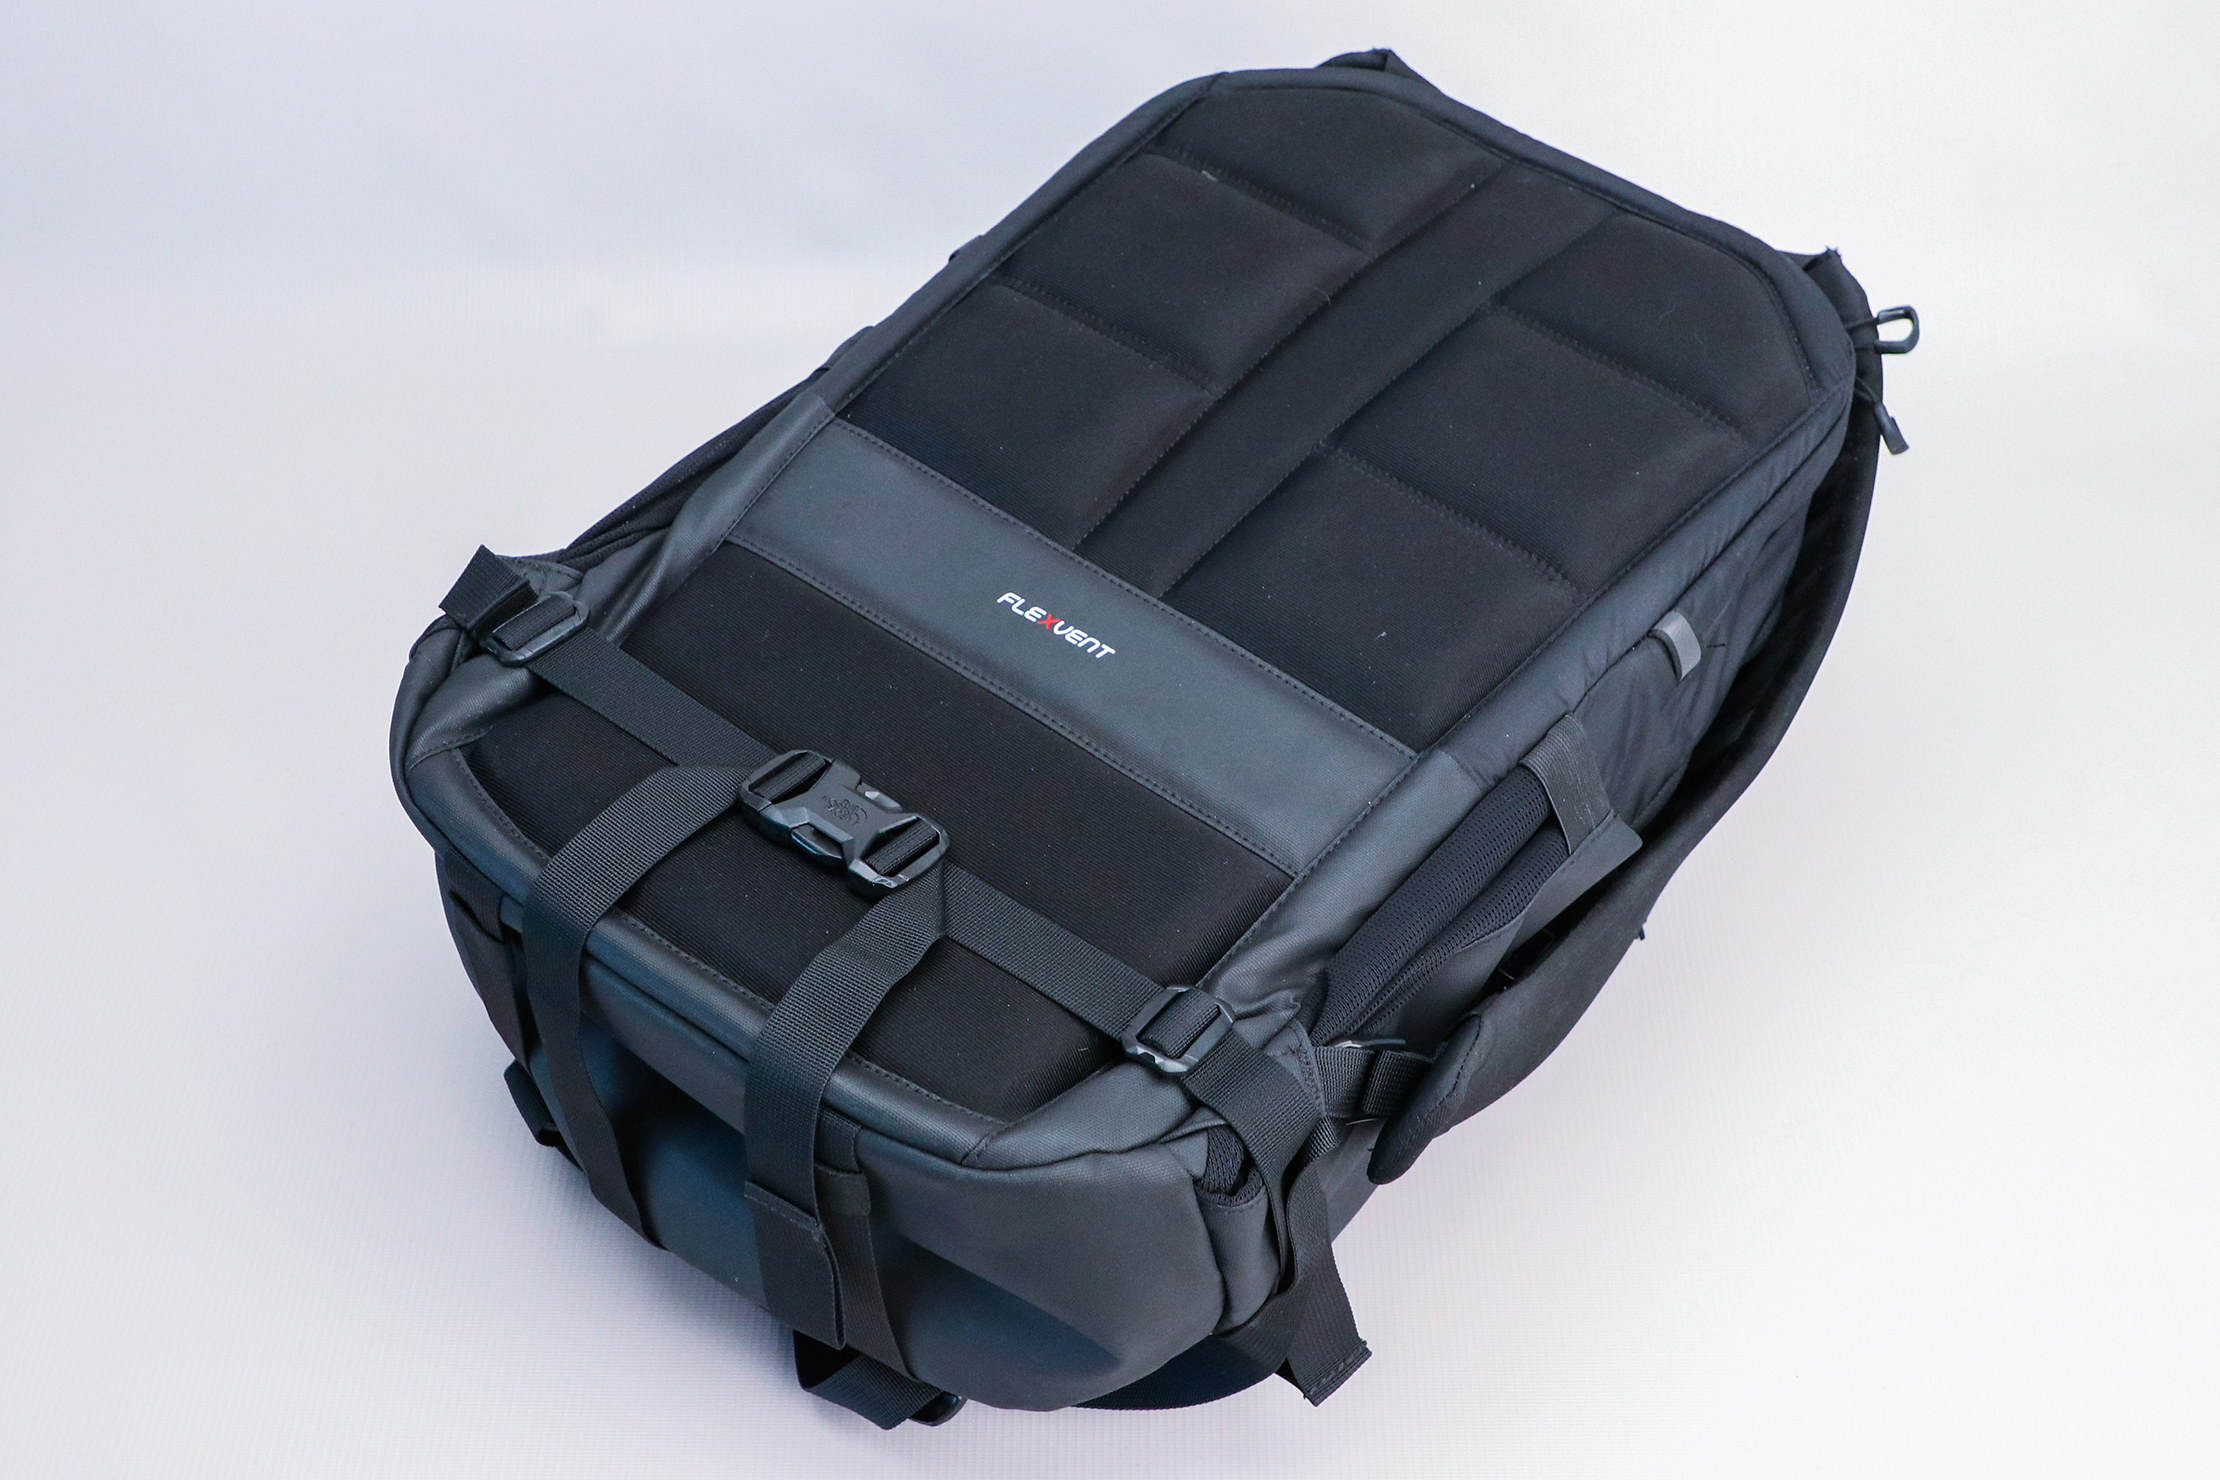 The North Face Surge Backpack back panel